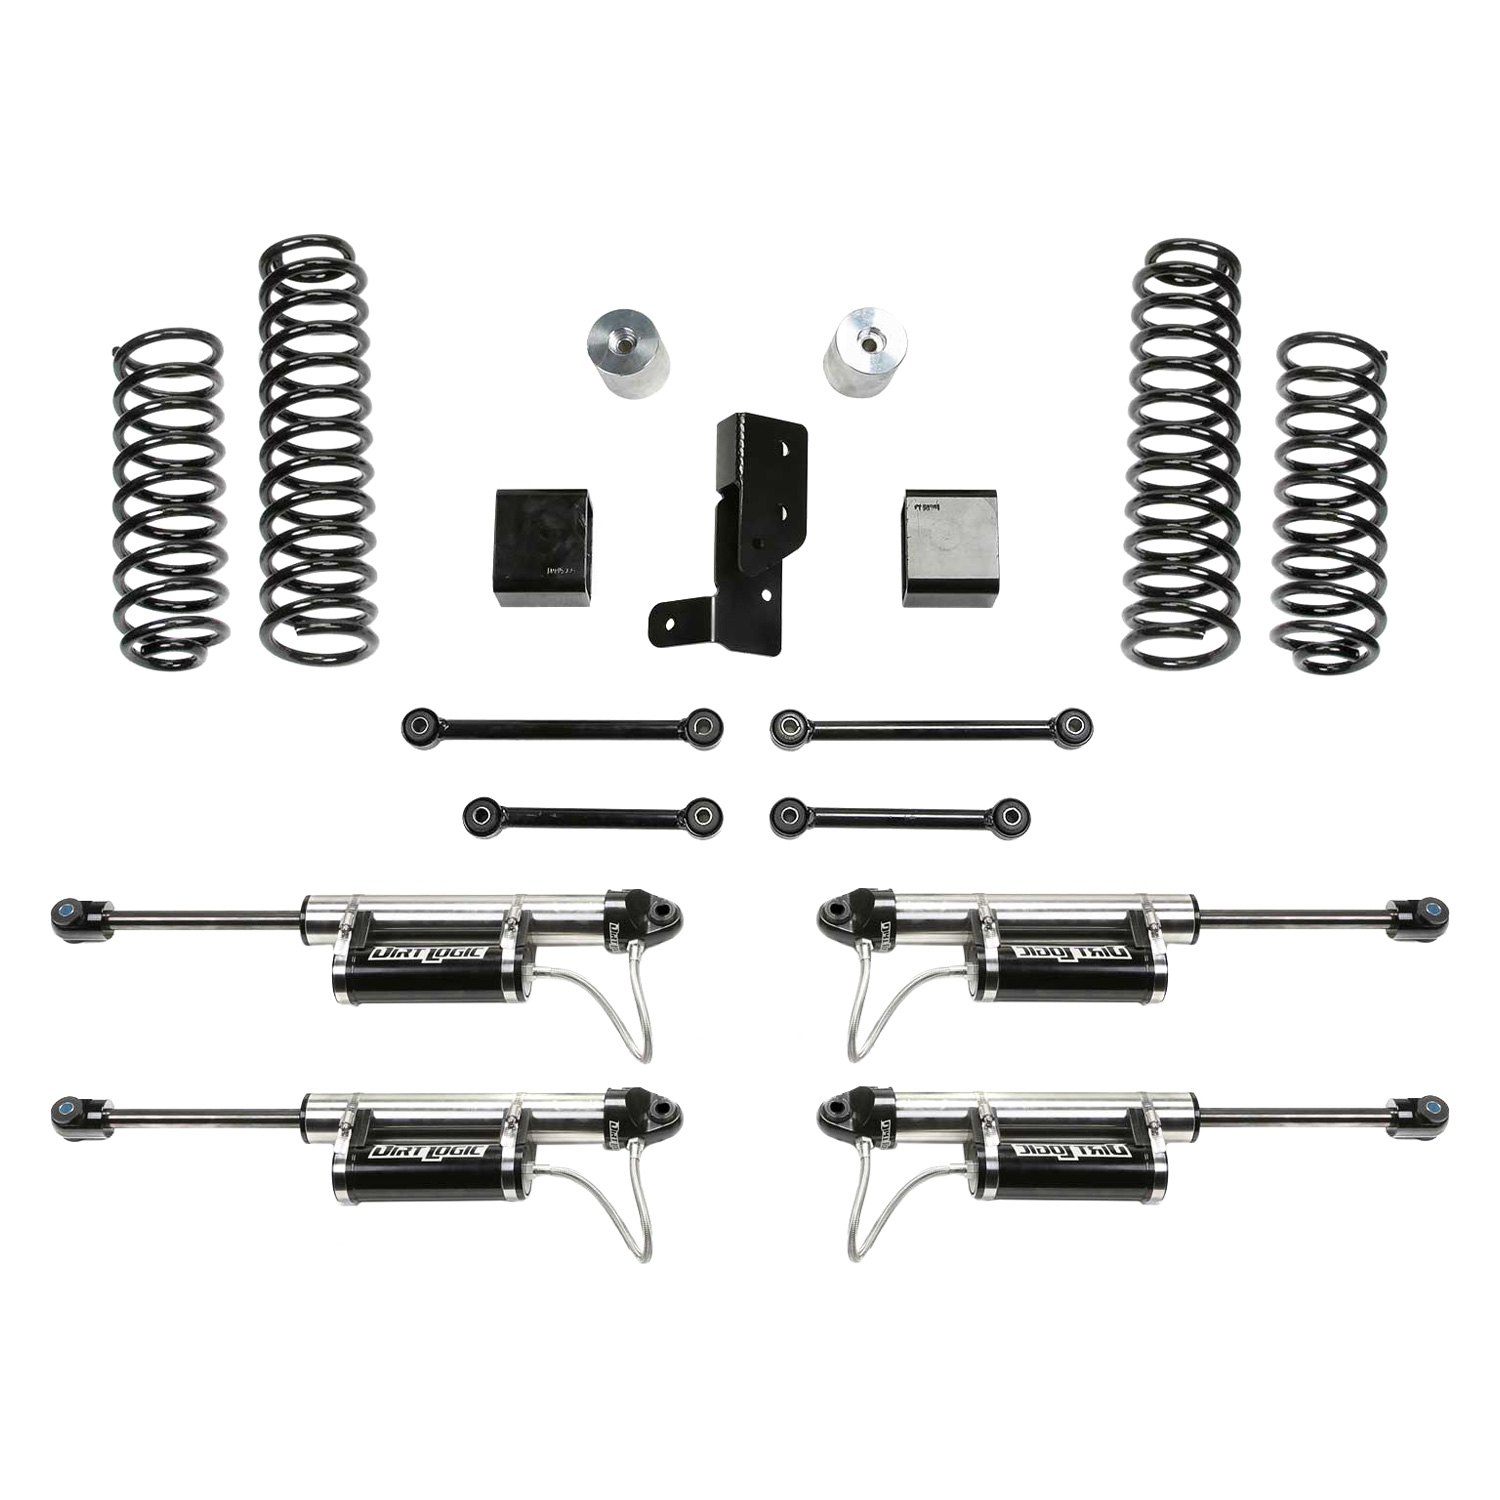 Fabtech Lift Kits >> Details About For Jeep Wrangler 18 Fabtech 3 X 3 Sport Front Rear Suspension Lift Kit